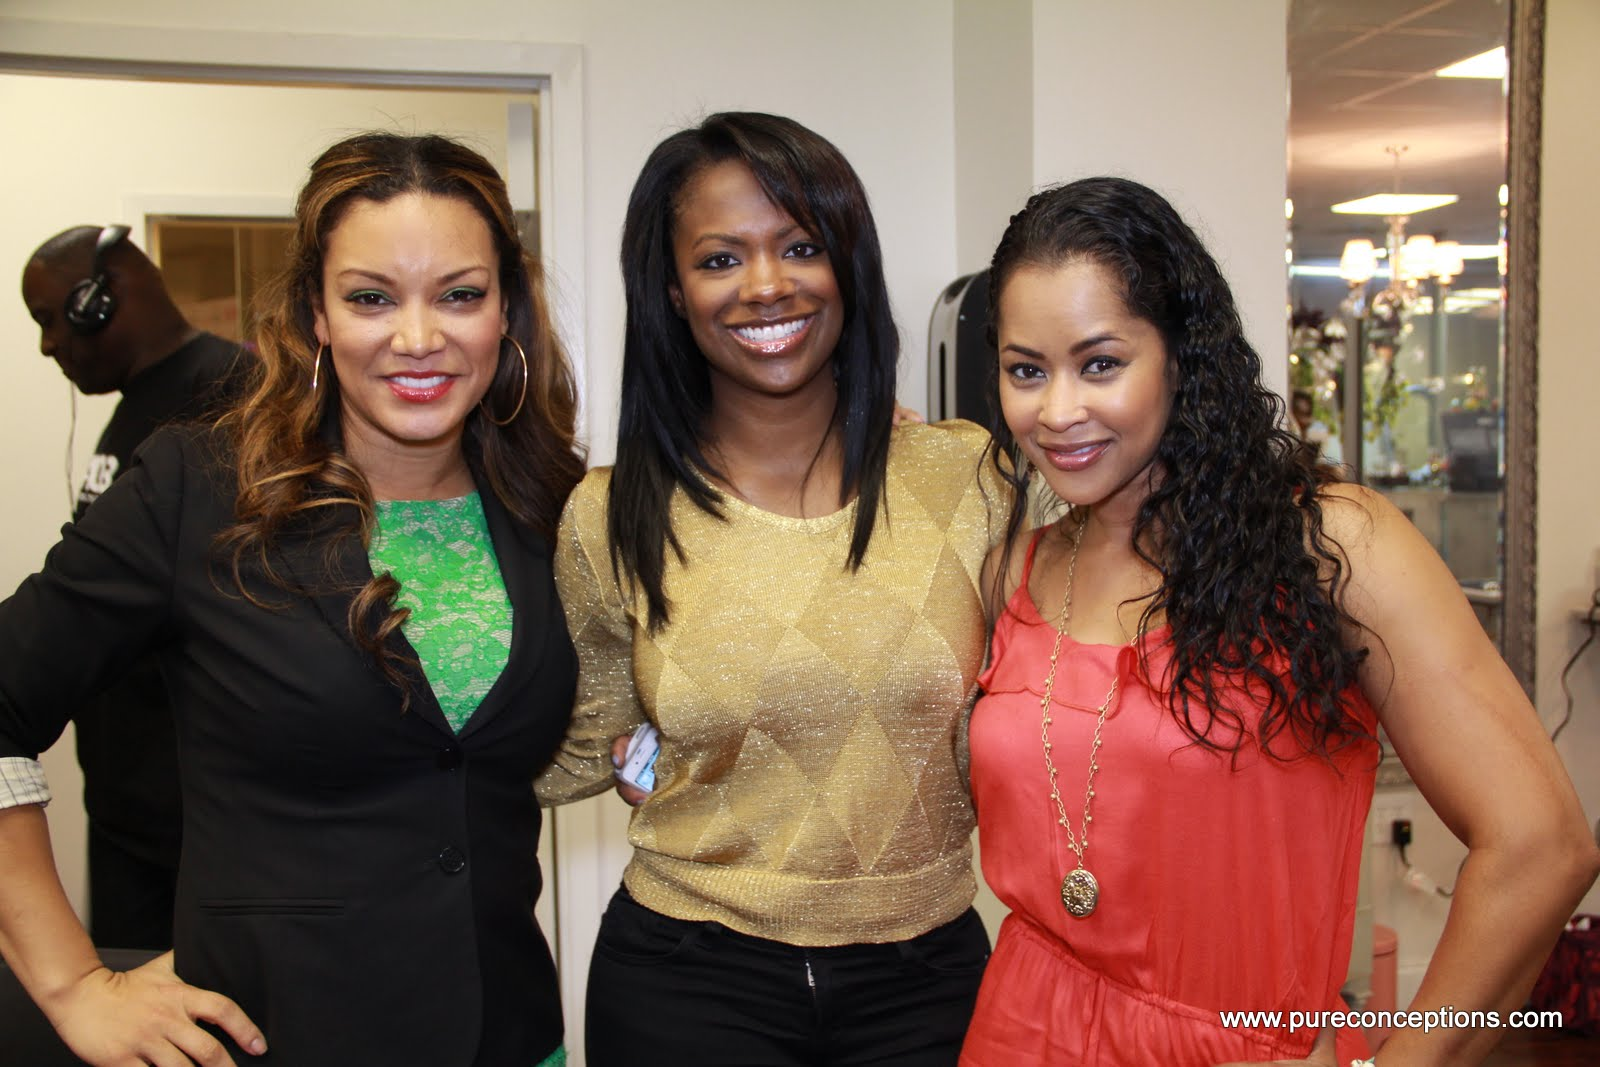 L to R:  Egypt Sherrod (V-103FM), Kandi Burruss (RHOA), & Lisa Wu (formerly of RHOA)